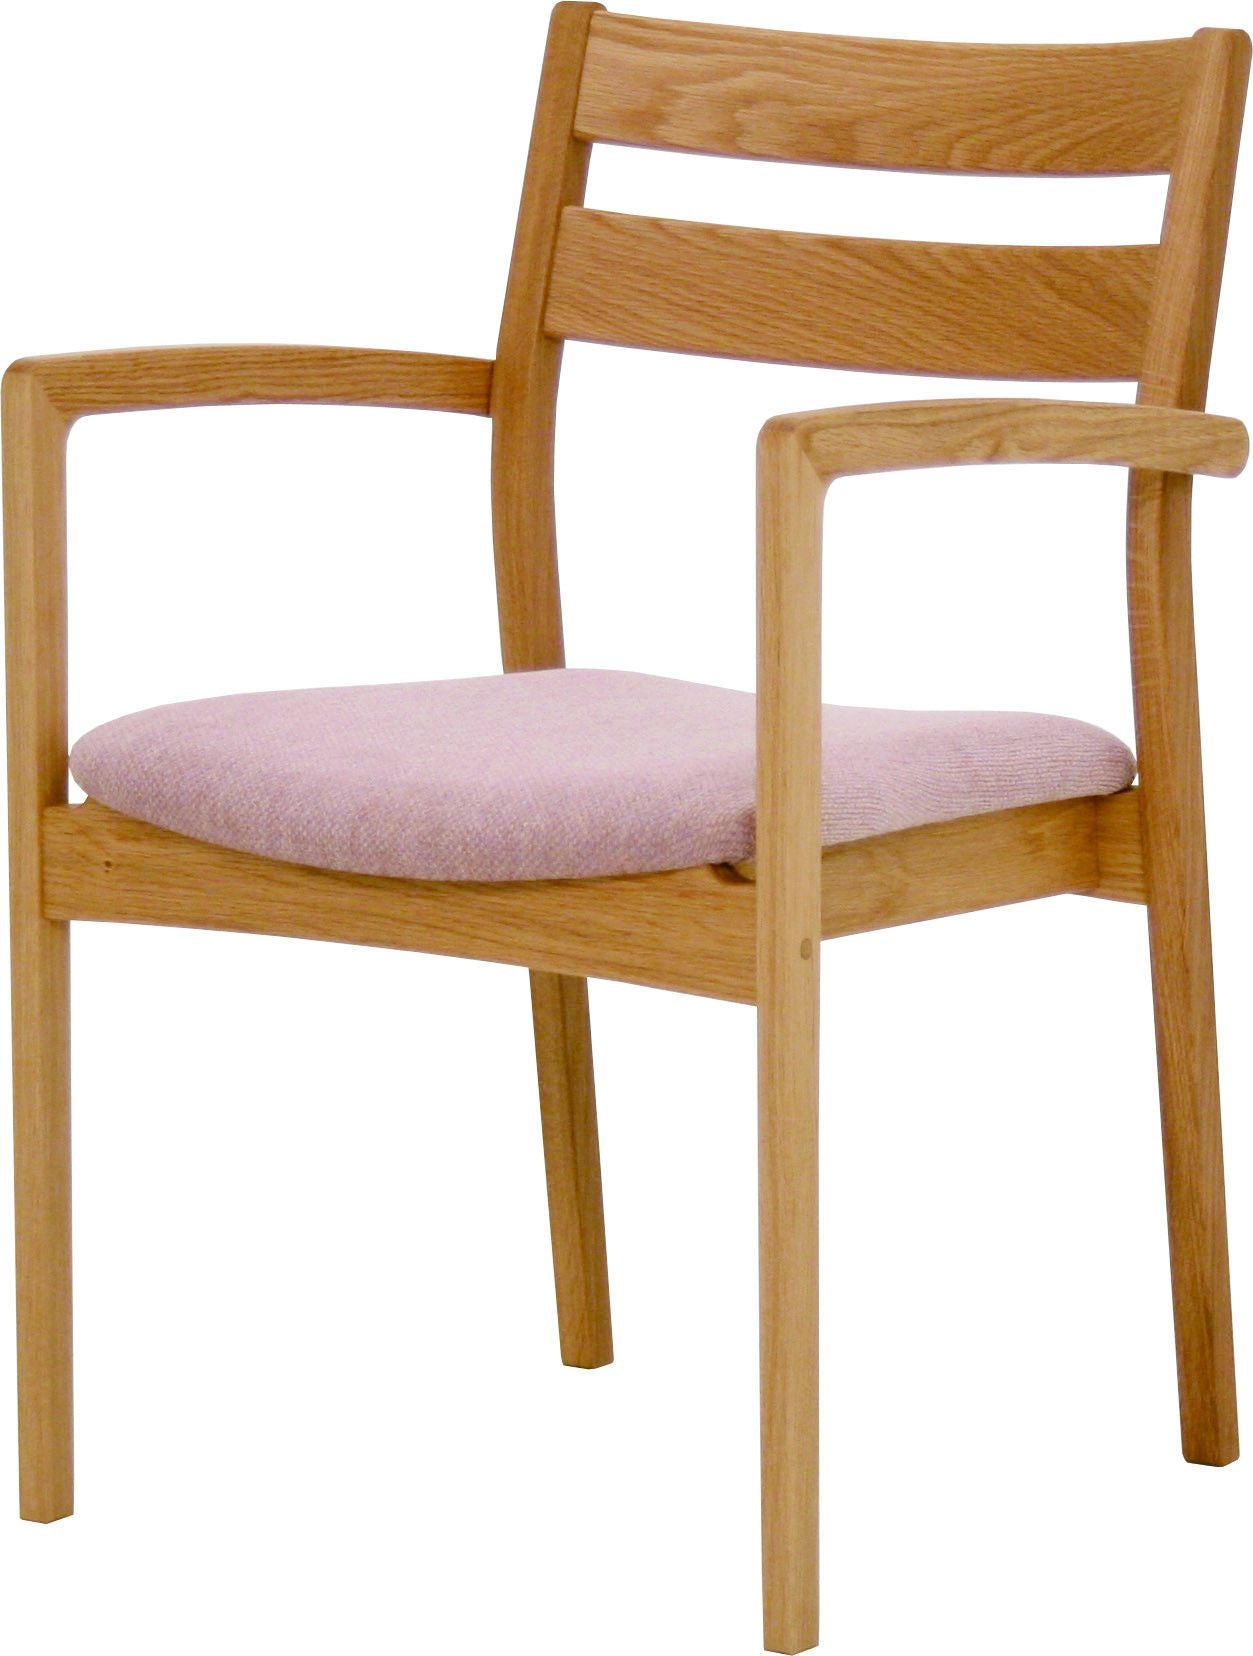 Nagano Interior - LARGO chair DC362-1W - Dining Chair